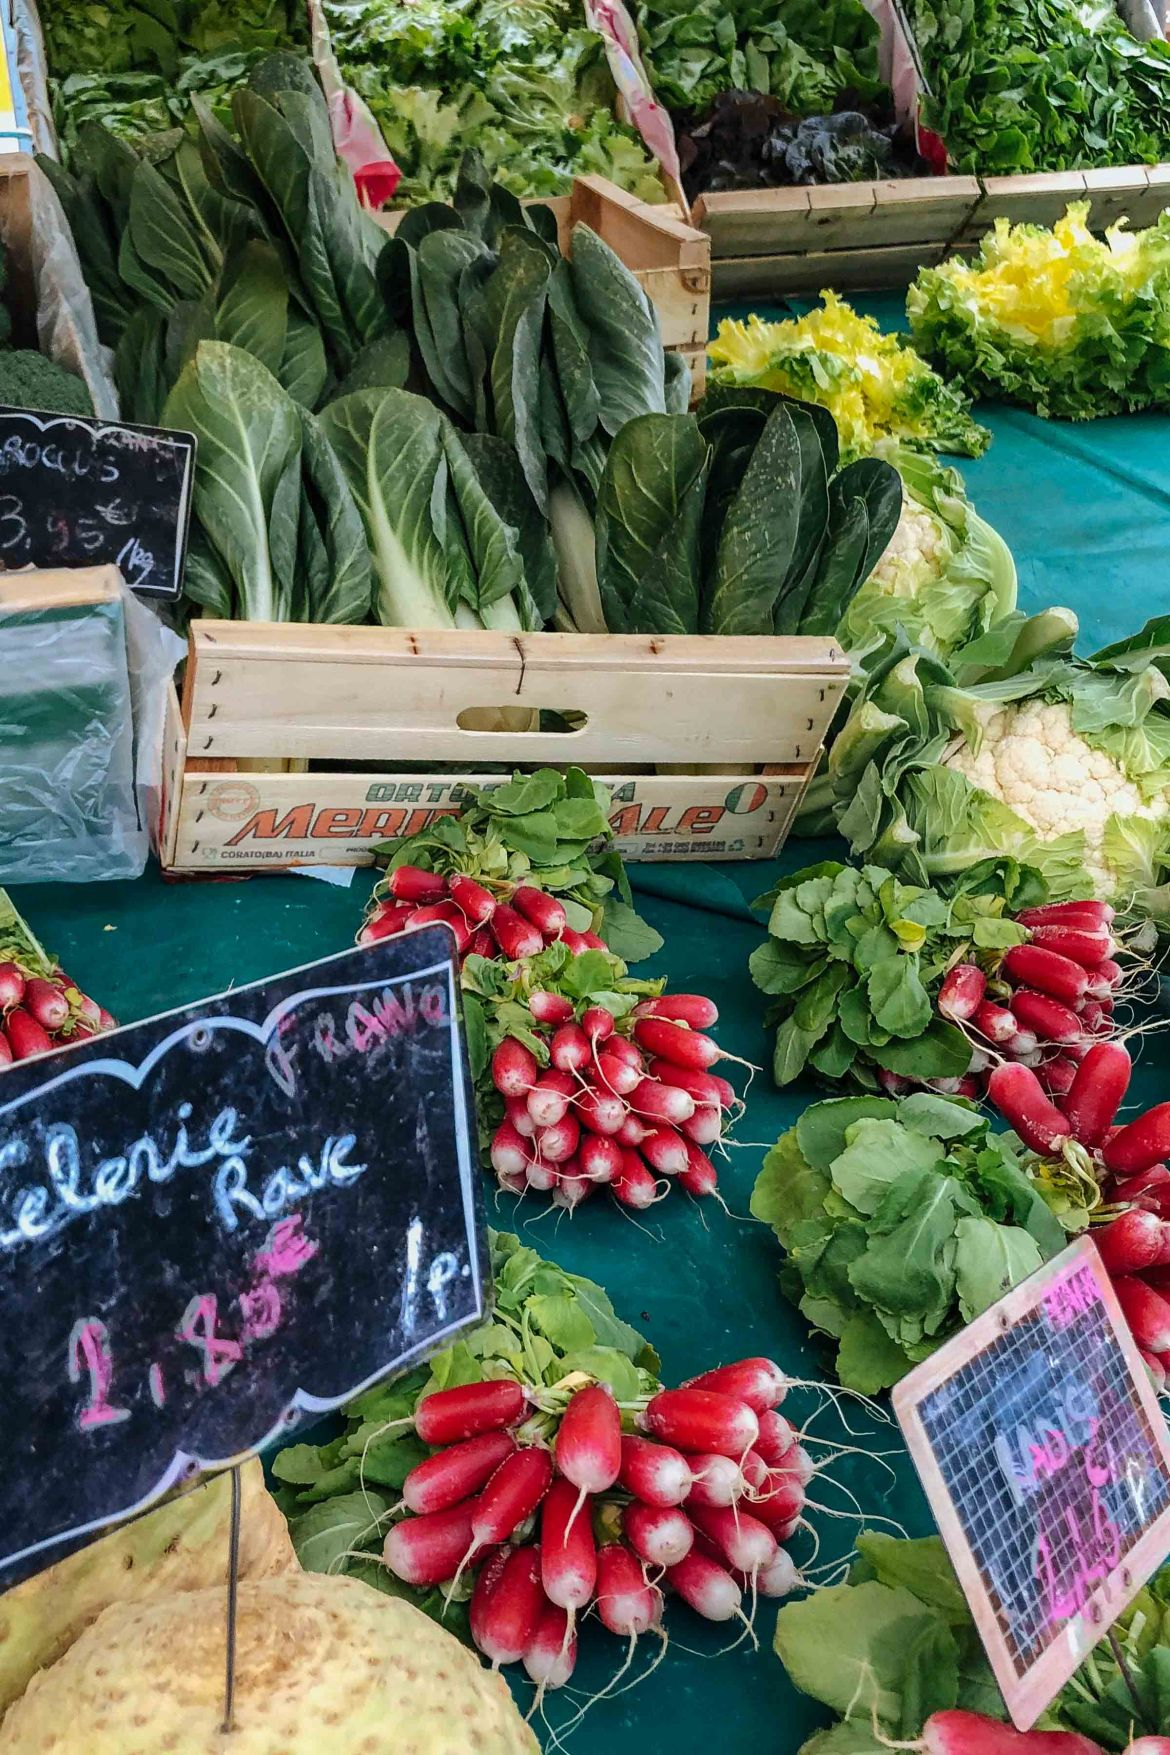 Visit the Paris markets to see seasonal vegetables and chefs - photo by Kate Leahy